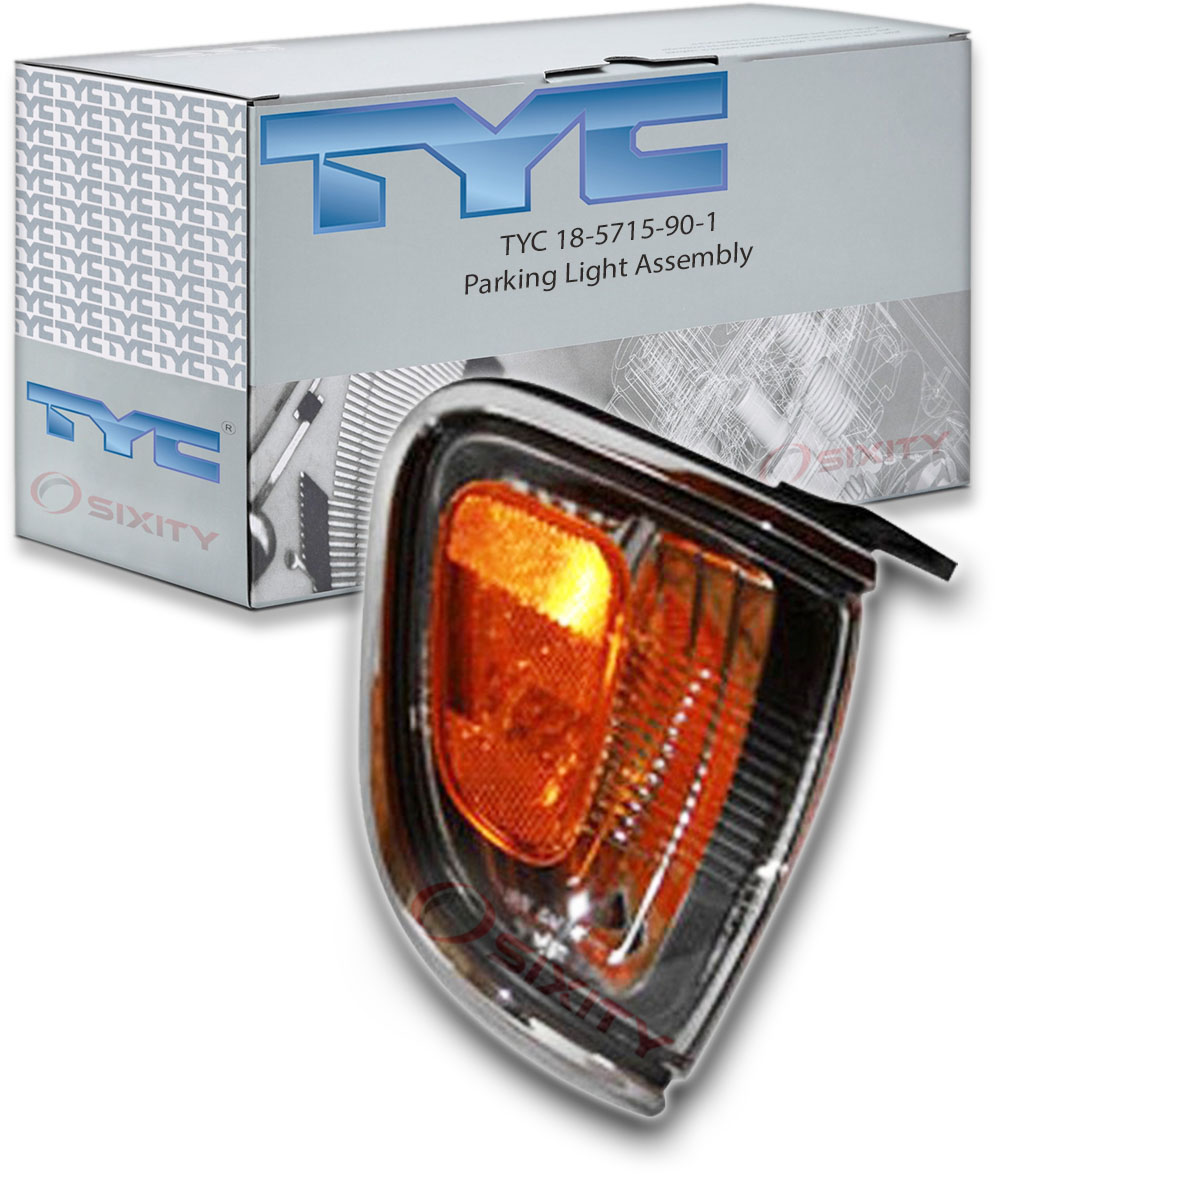 TYC 18-5715-90 Toyota Tacoma Passenger Side Replacement Parking Lamp